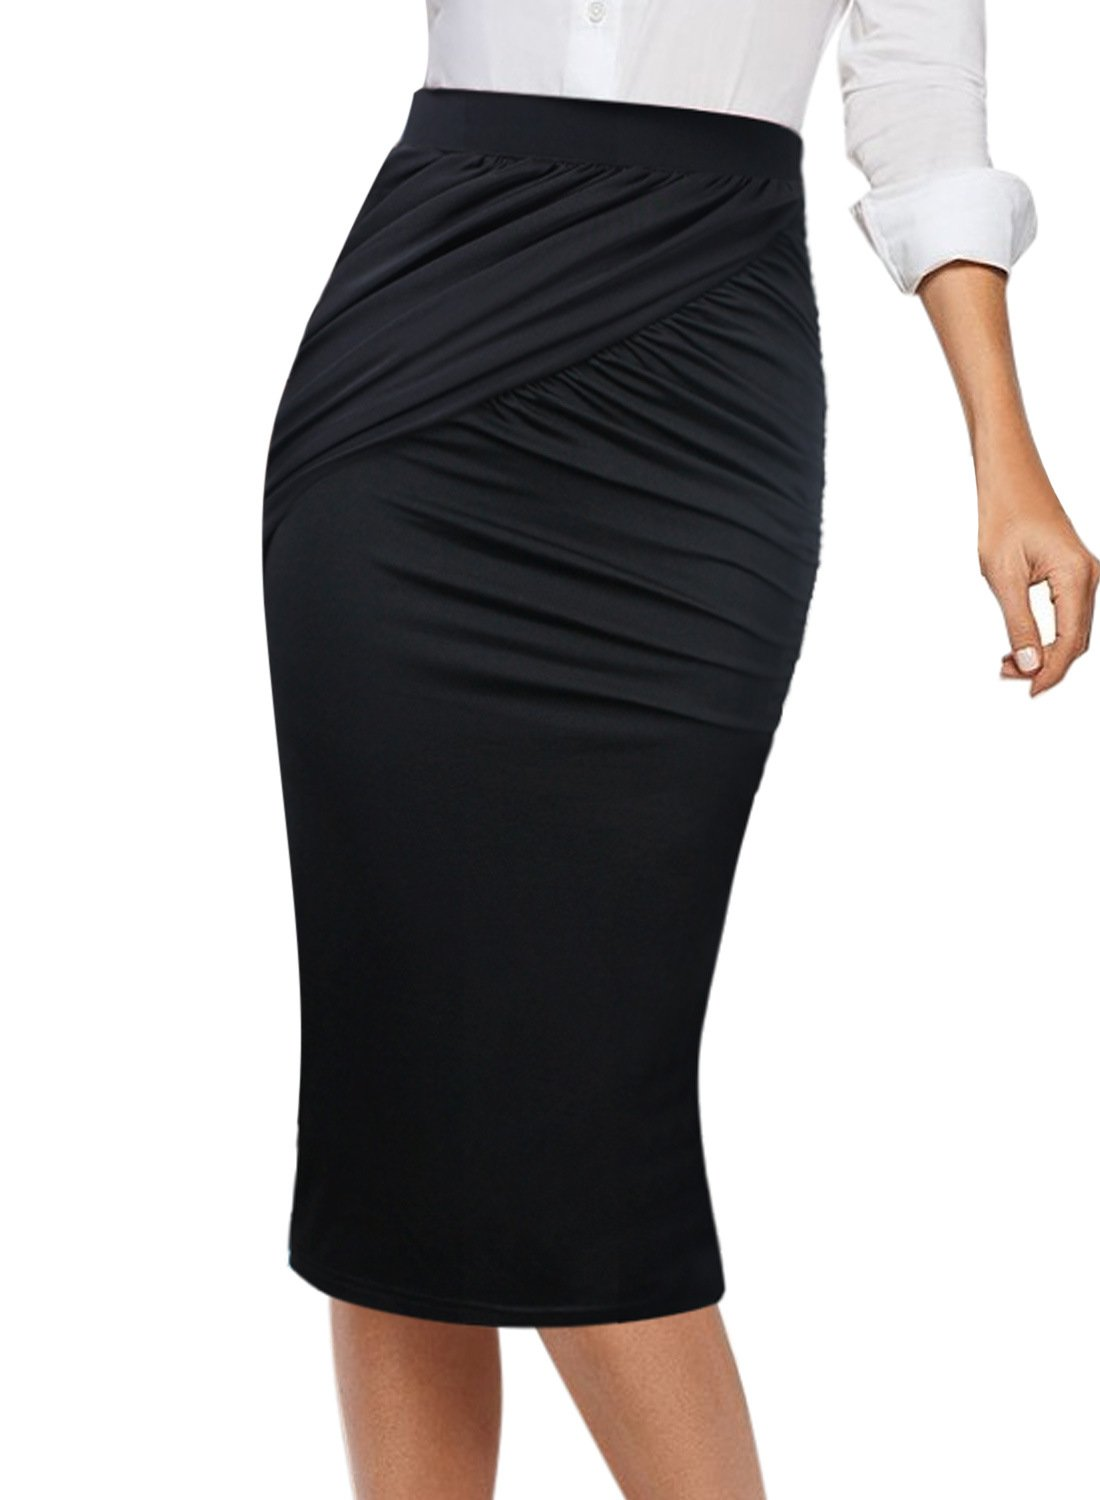 VFSHOW Womens Elegant Ruched High Waist Work Casual Pencil Midi Skirt 303 BLK M